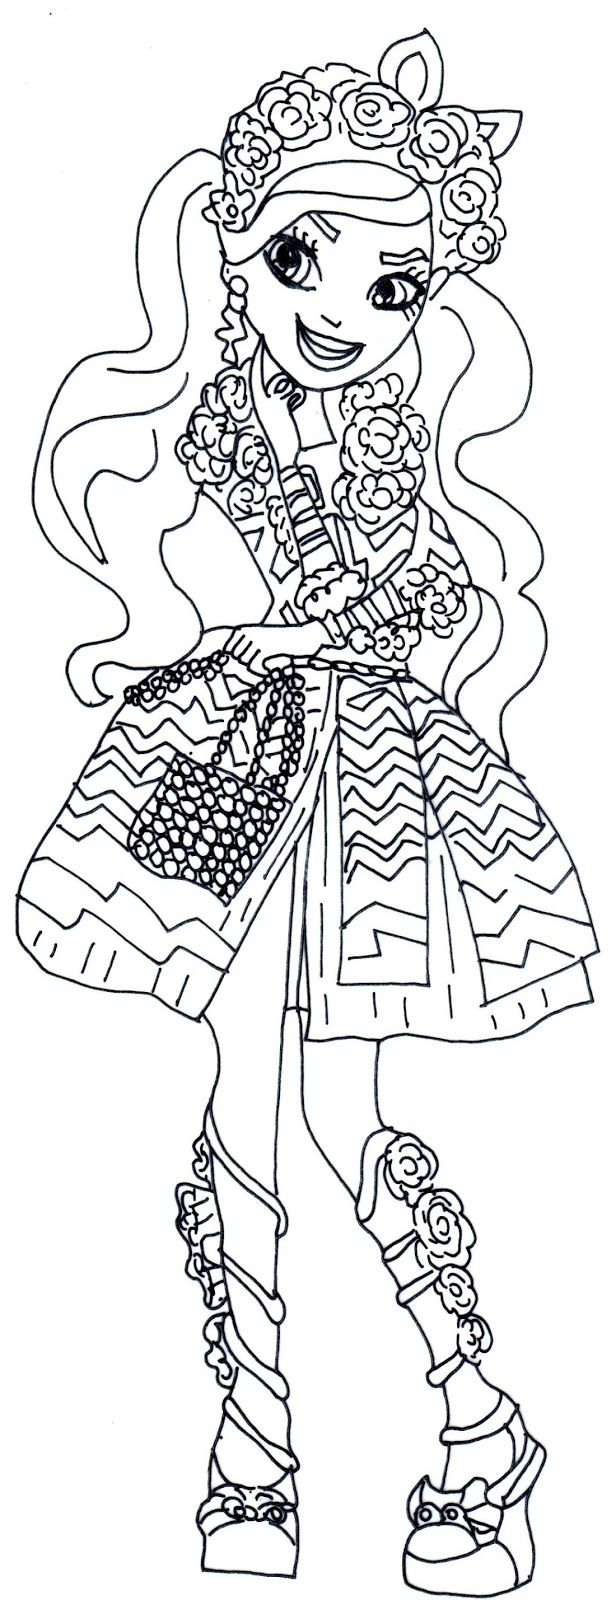 Spring Unsprung Kitty Chesire Ever After High Coloring Pages Printable And Book To Print For Free Find More Online Kids